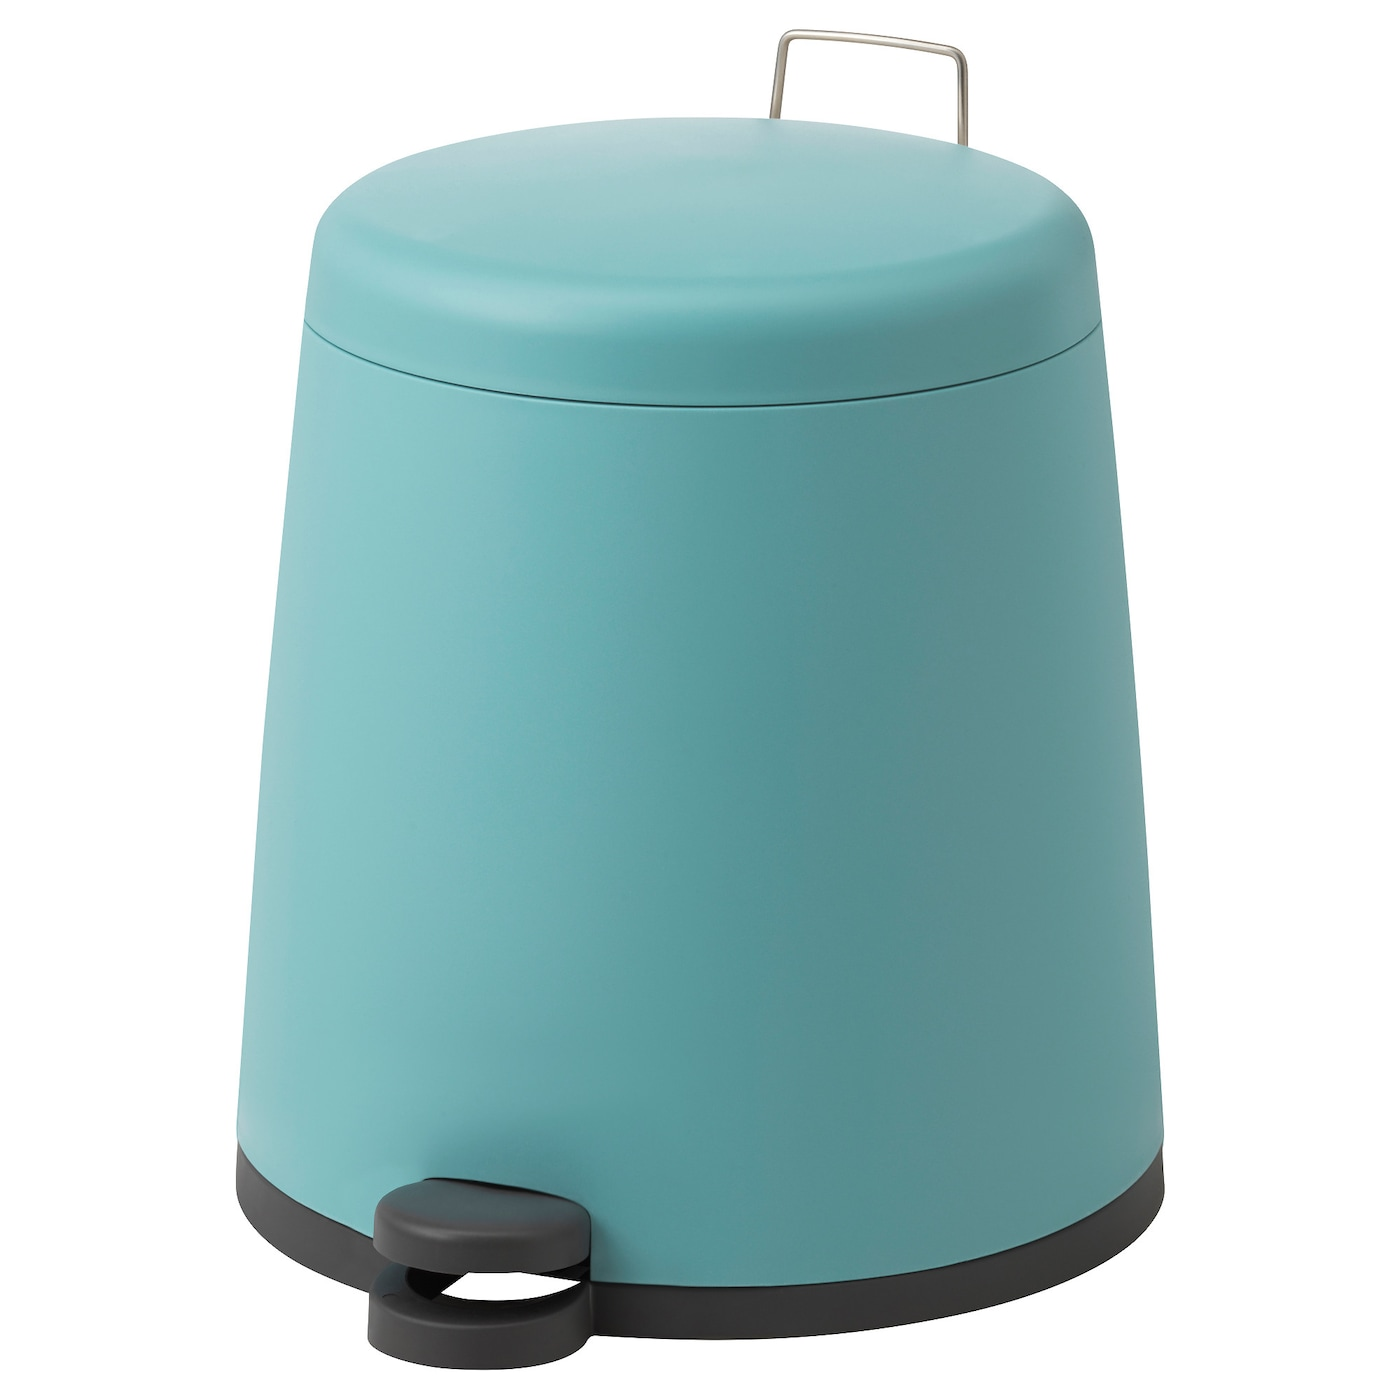 IKEA SNÄPP pedal bin The bin is easy to move since it has a handle on the back.